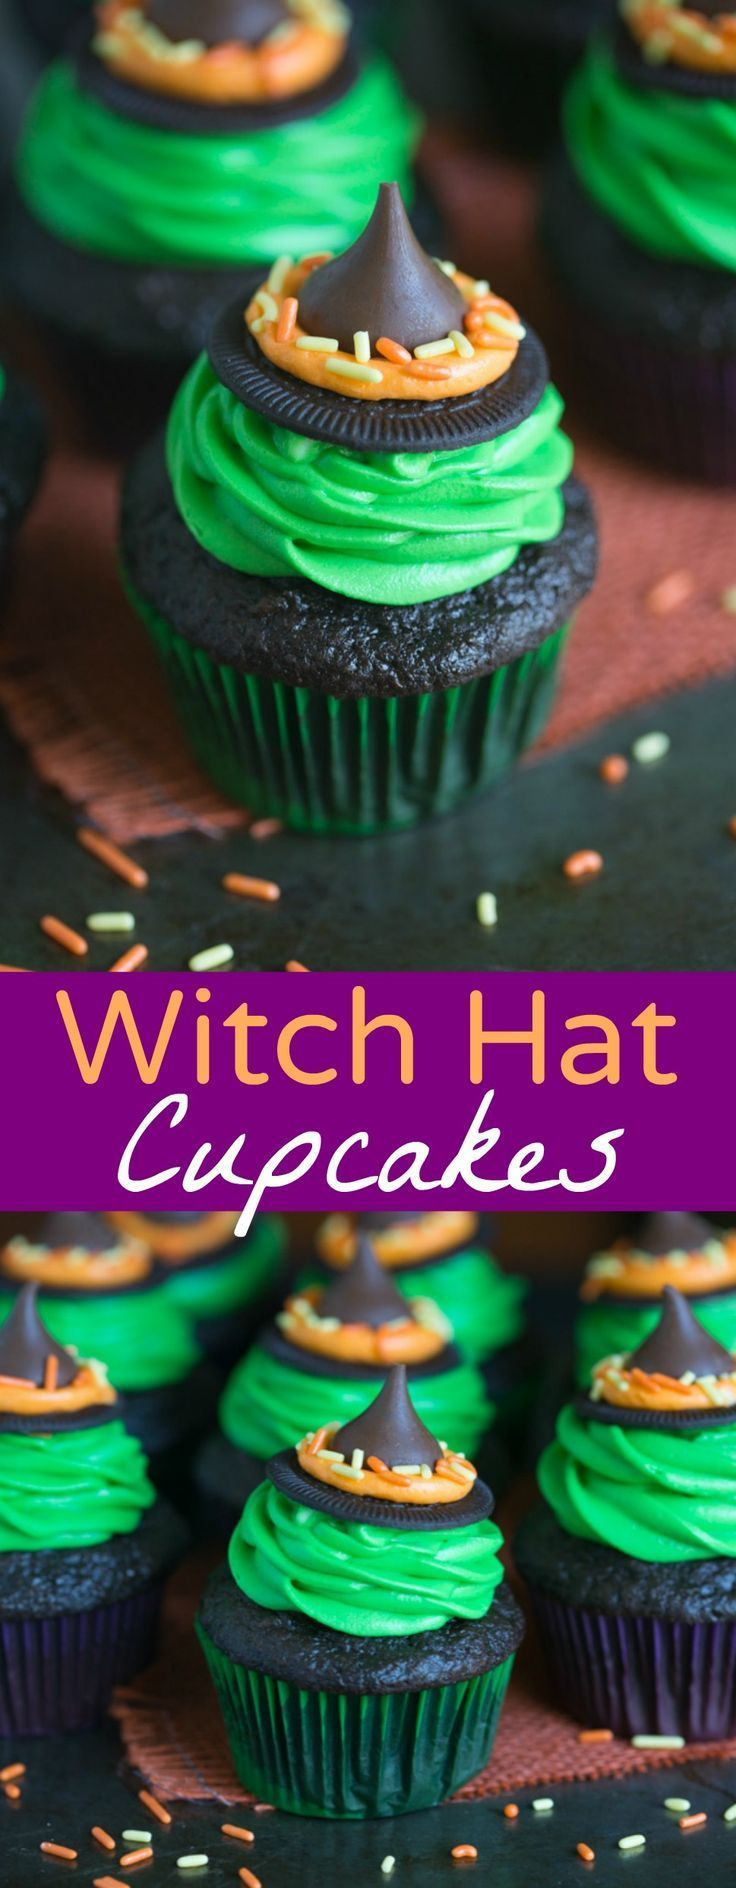 Witch Hat Cupcakes that take just 5 ingredients to make! You kids will love helping you make these fun and easy Halloween cupcakes! | Tastes Better From Scratch (Halloween Food Recipes)